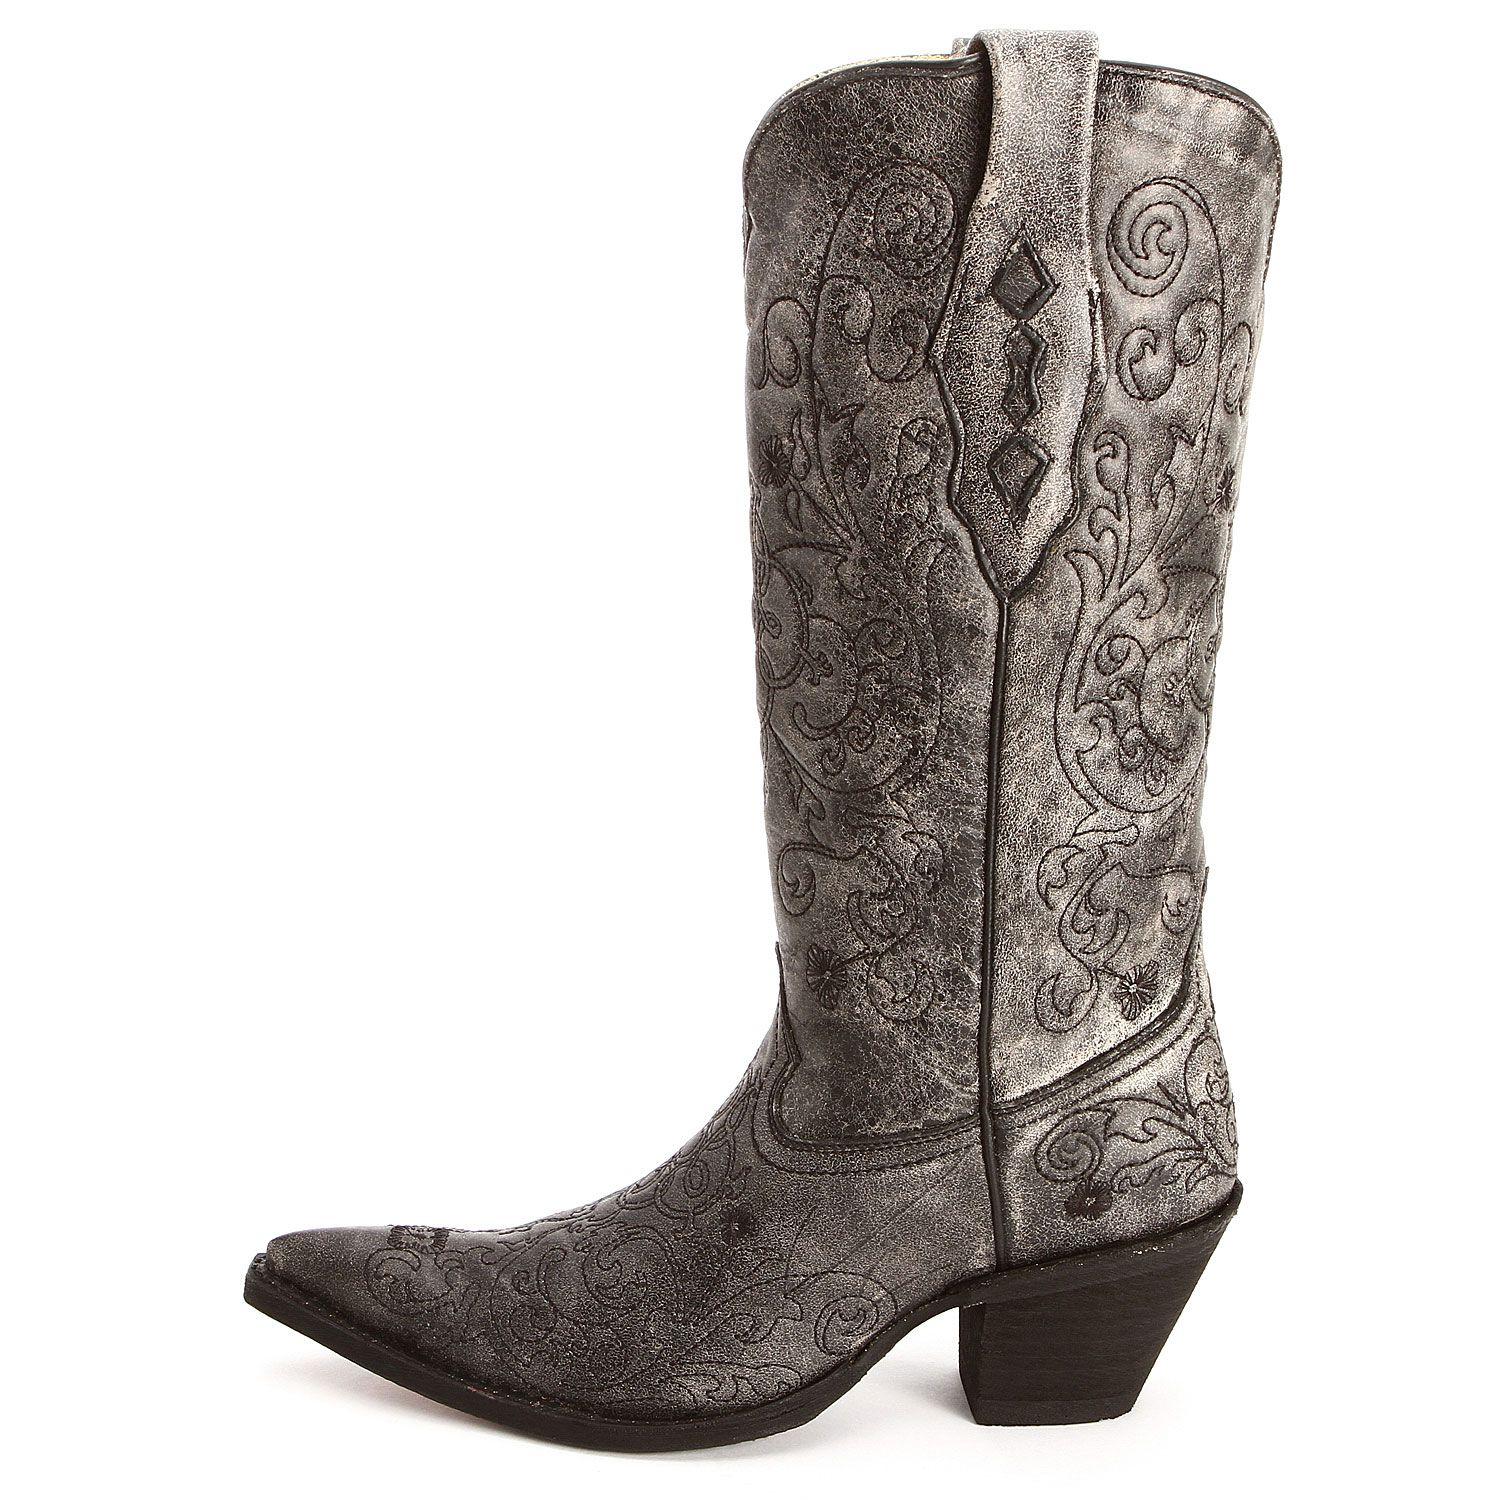 BootDaddy Collection with Corral Black Embroidered Cowgirl Boots